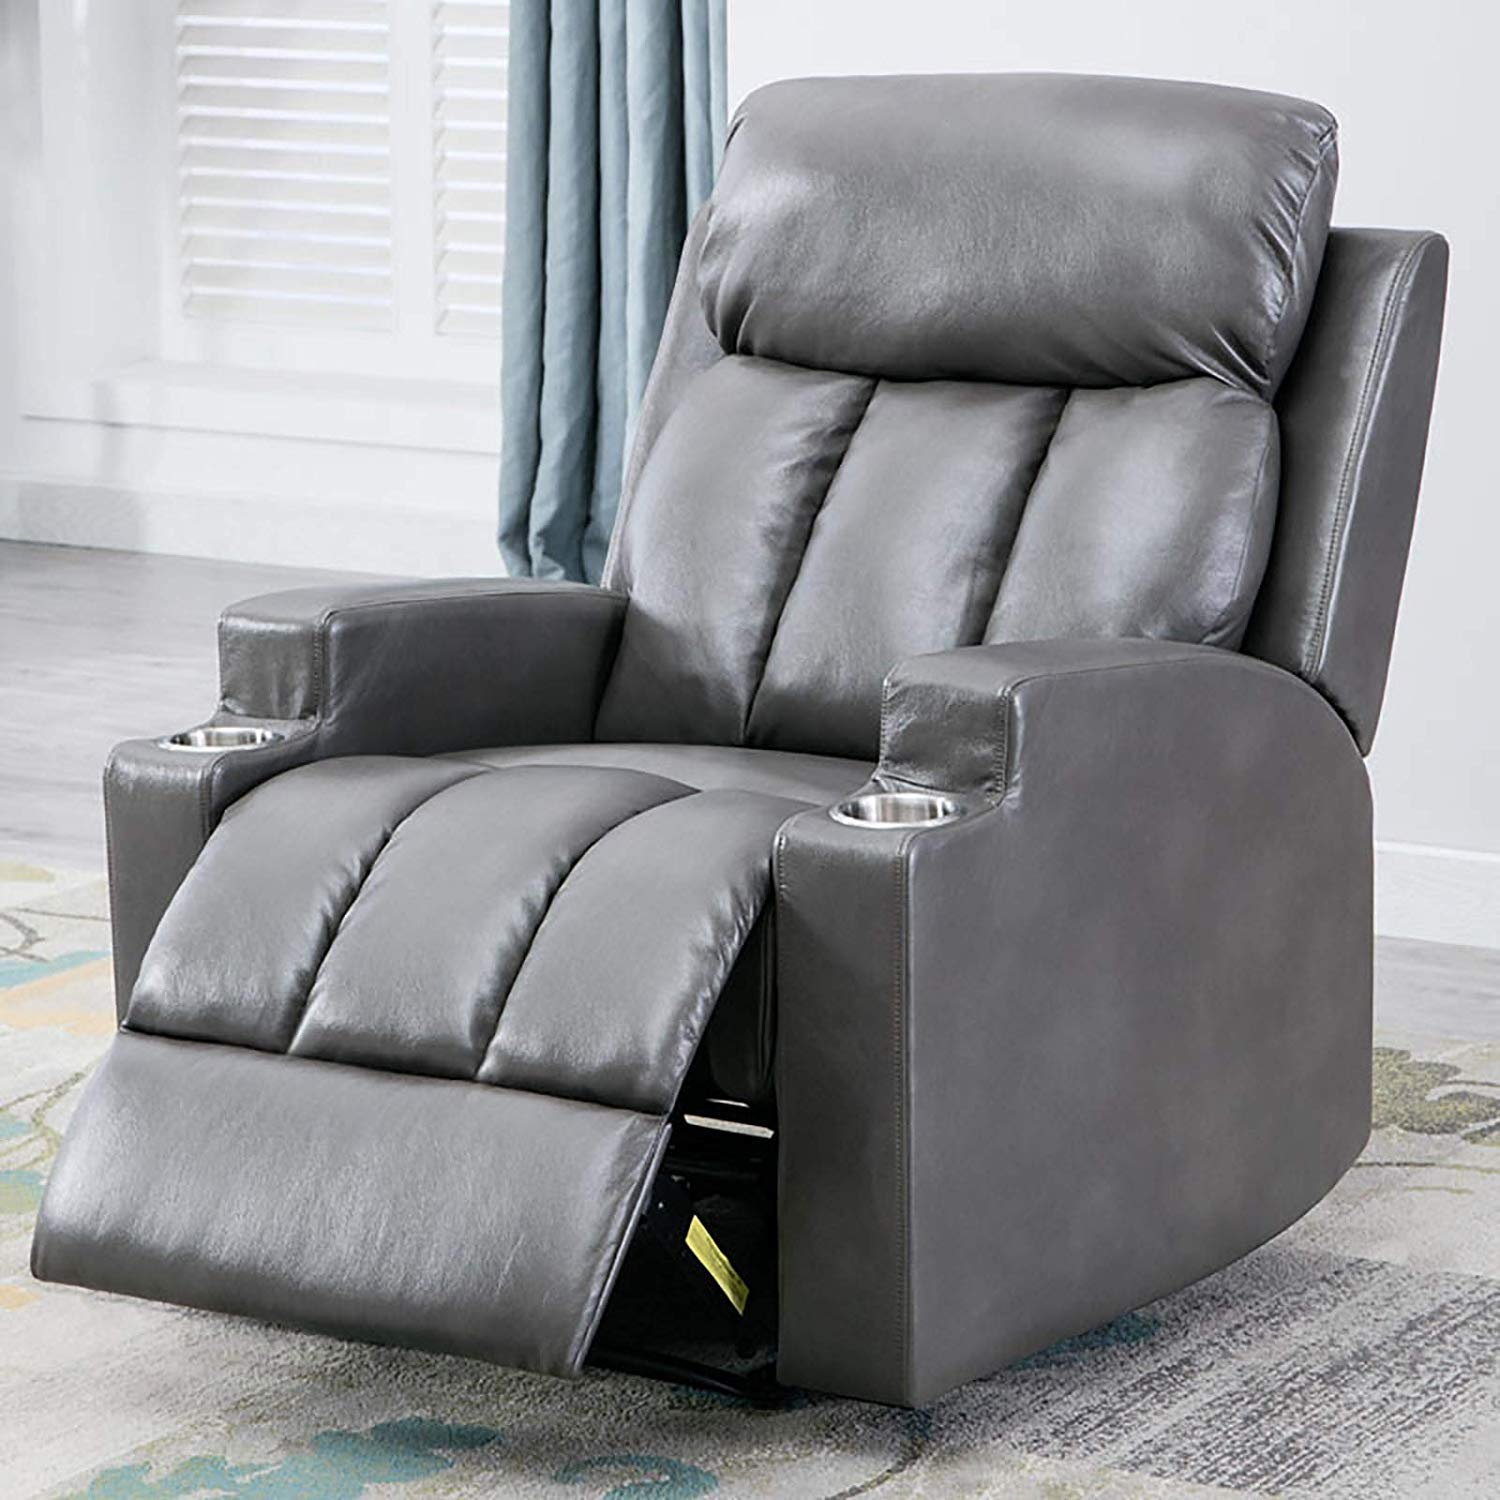 ANJ Chair Recliner Contemporary Theater Recliner Single Sofa with 2 Cup Holders Light Grey-R6315